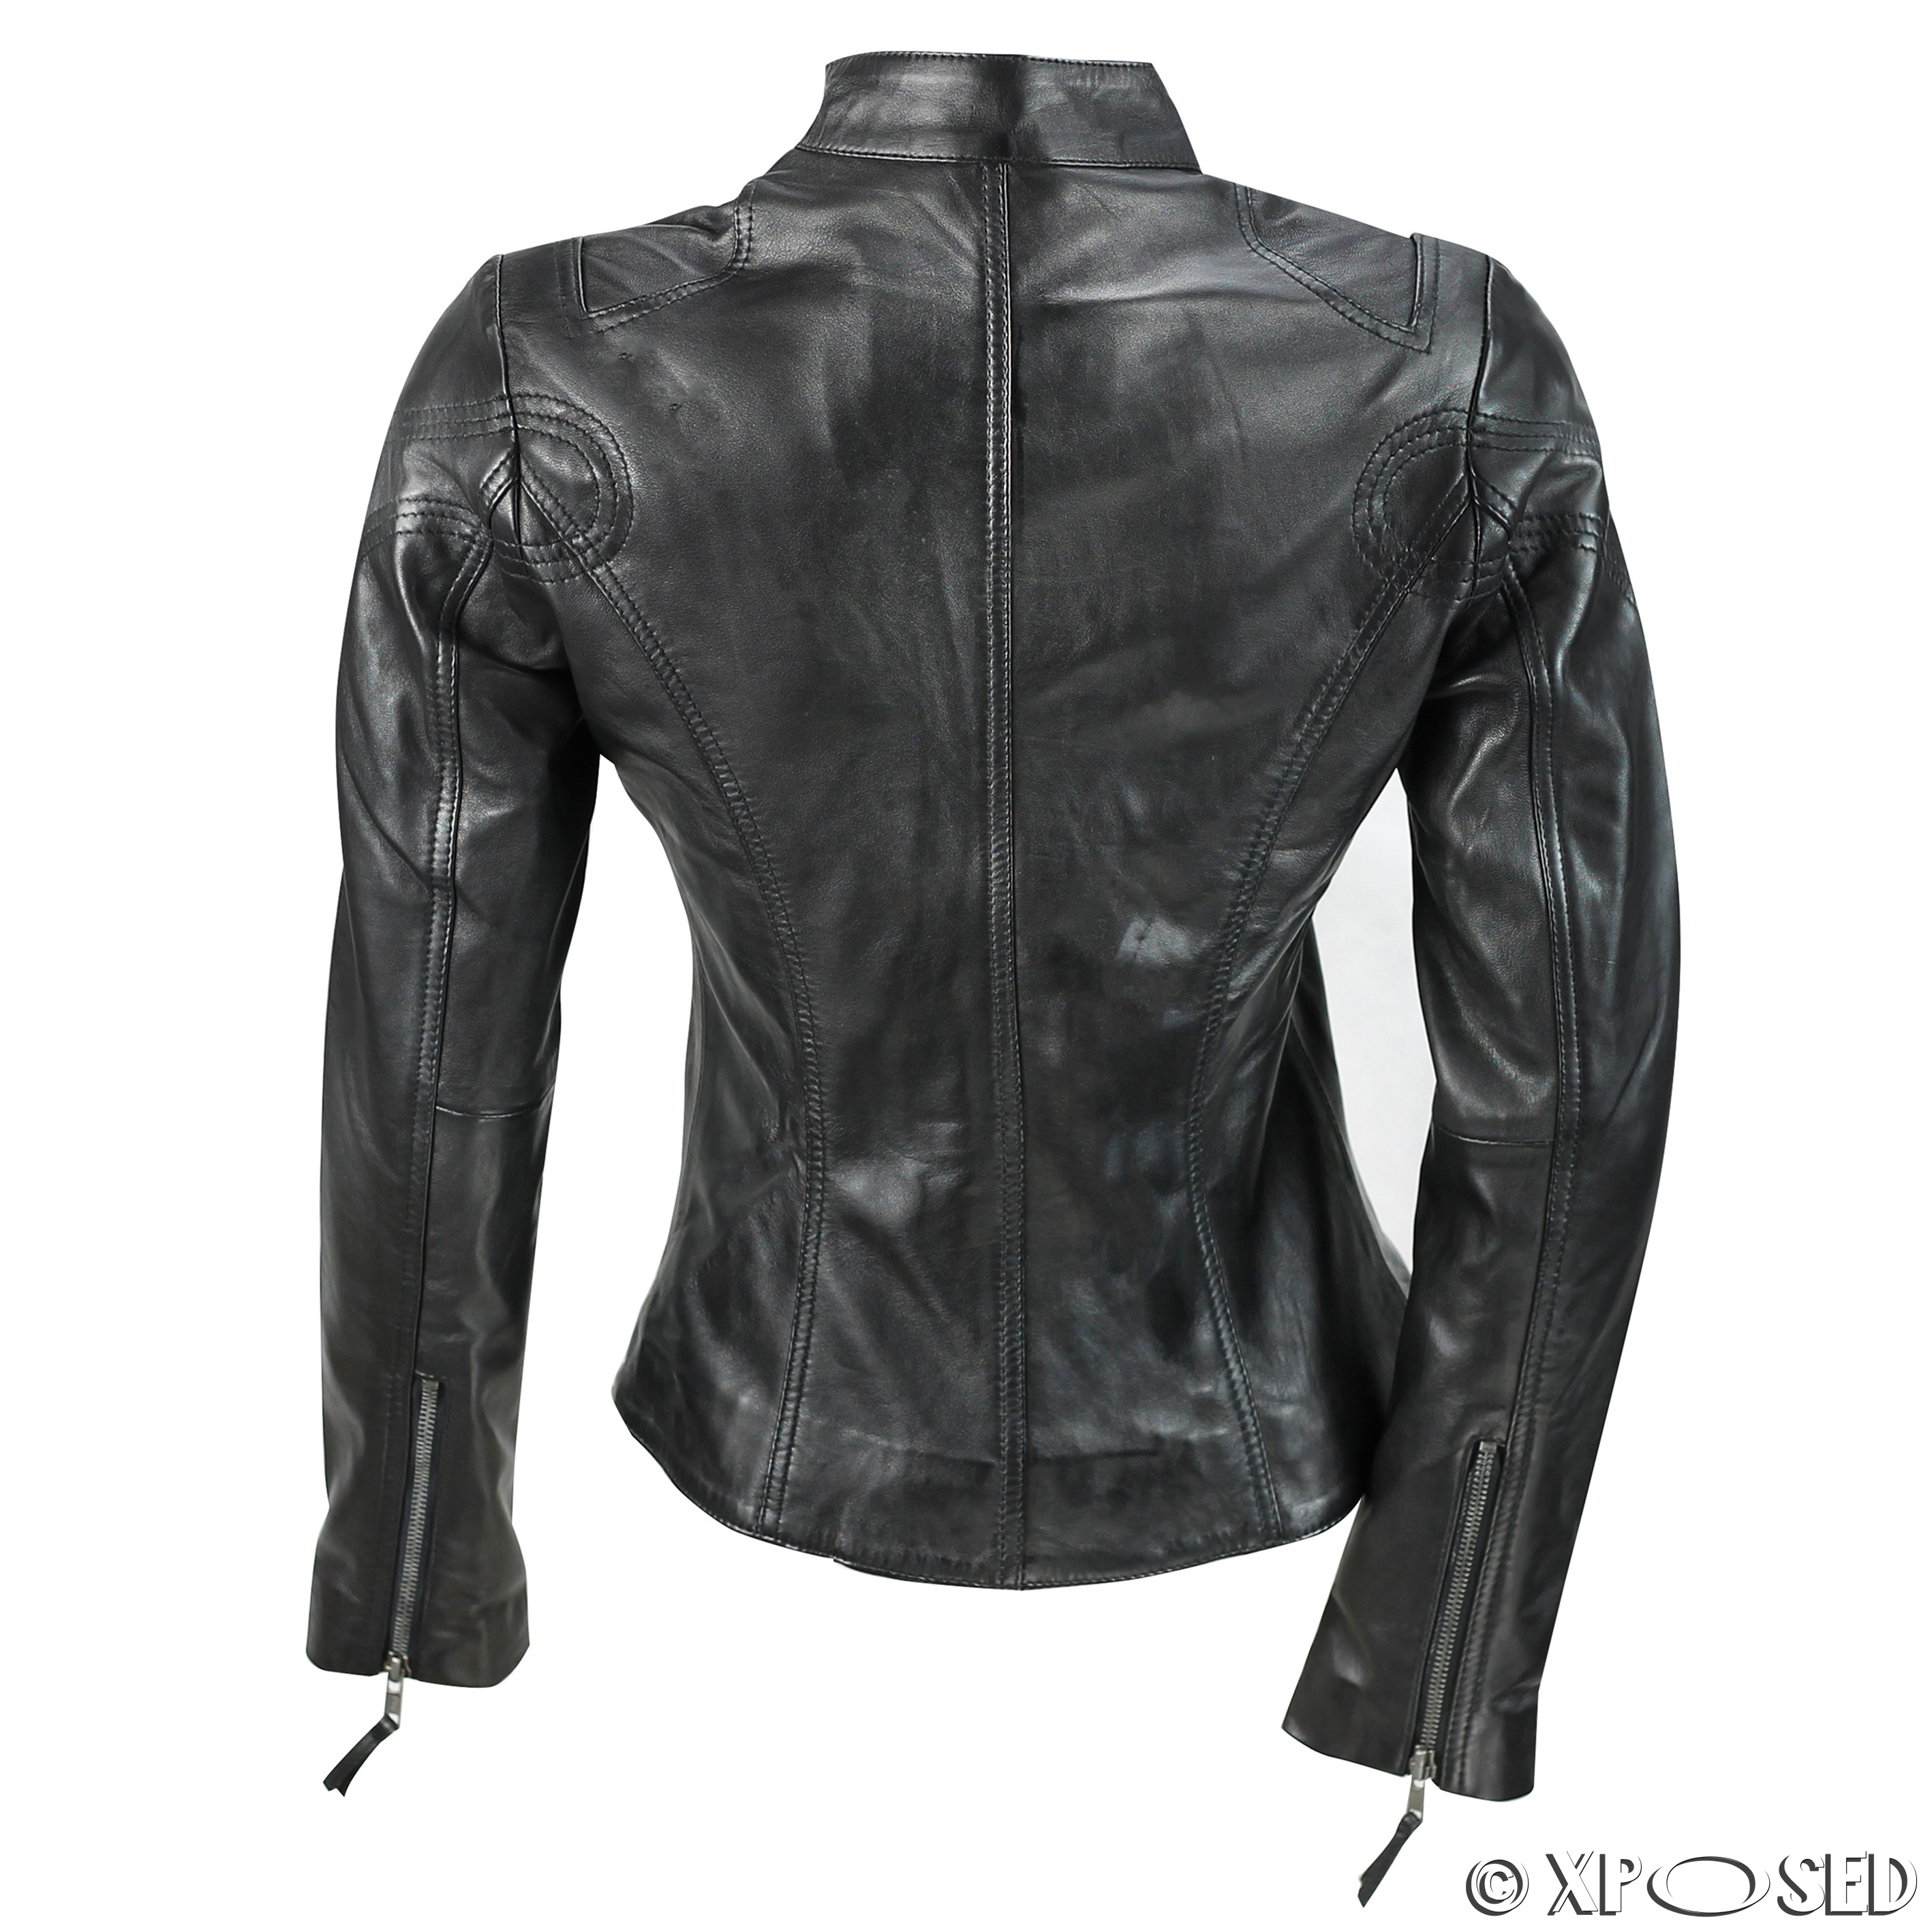 Jackets for women ebay